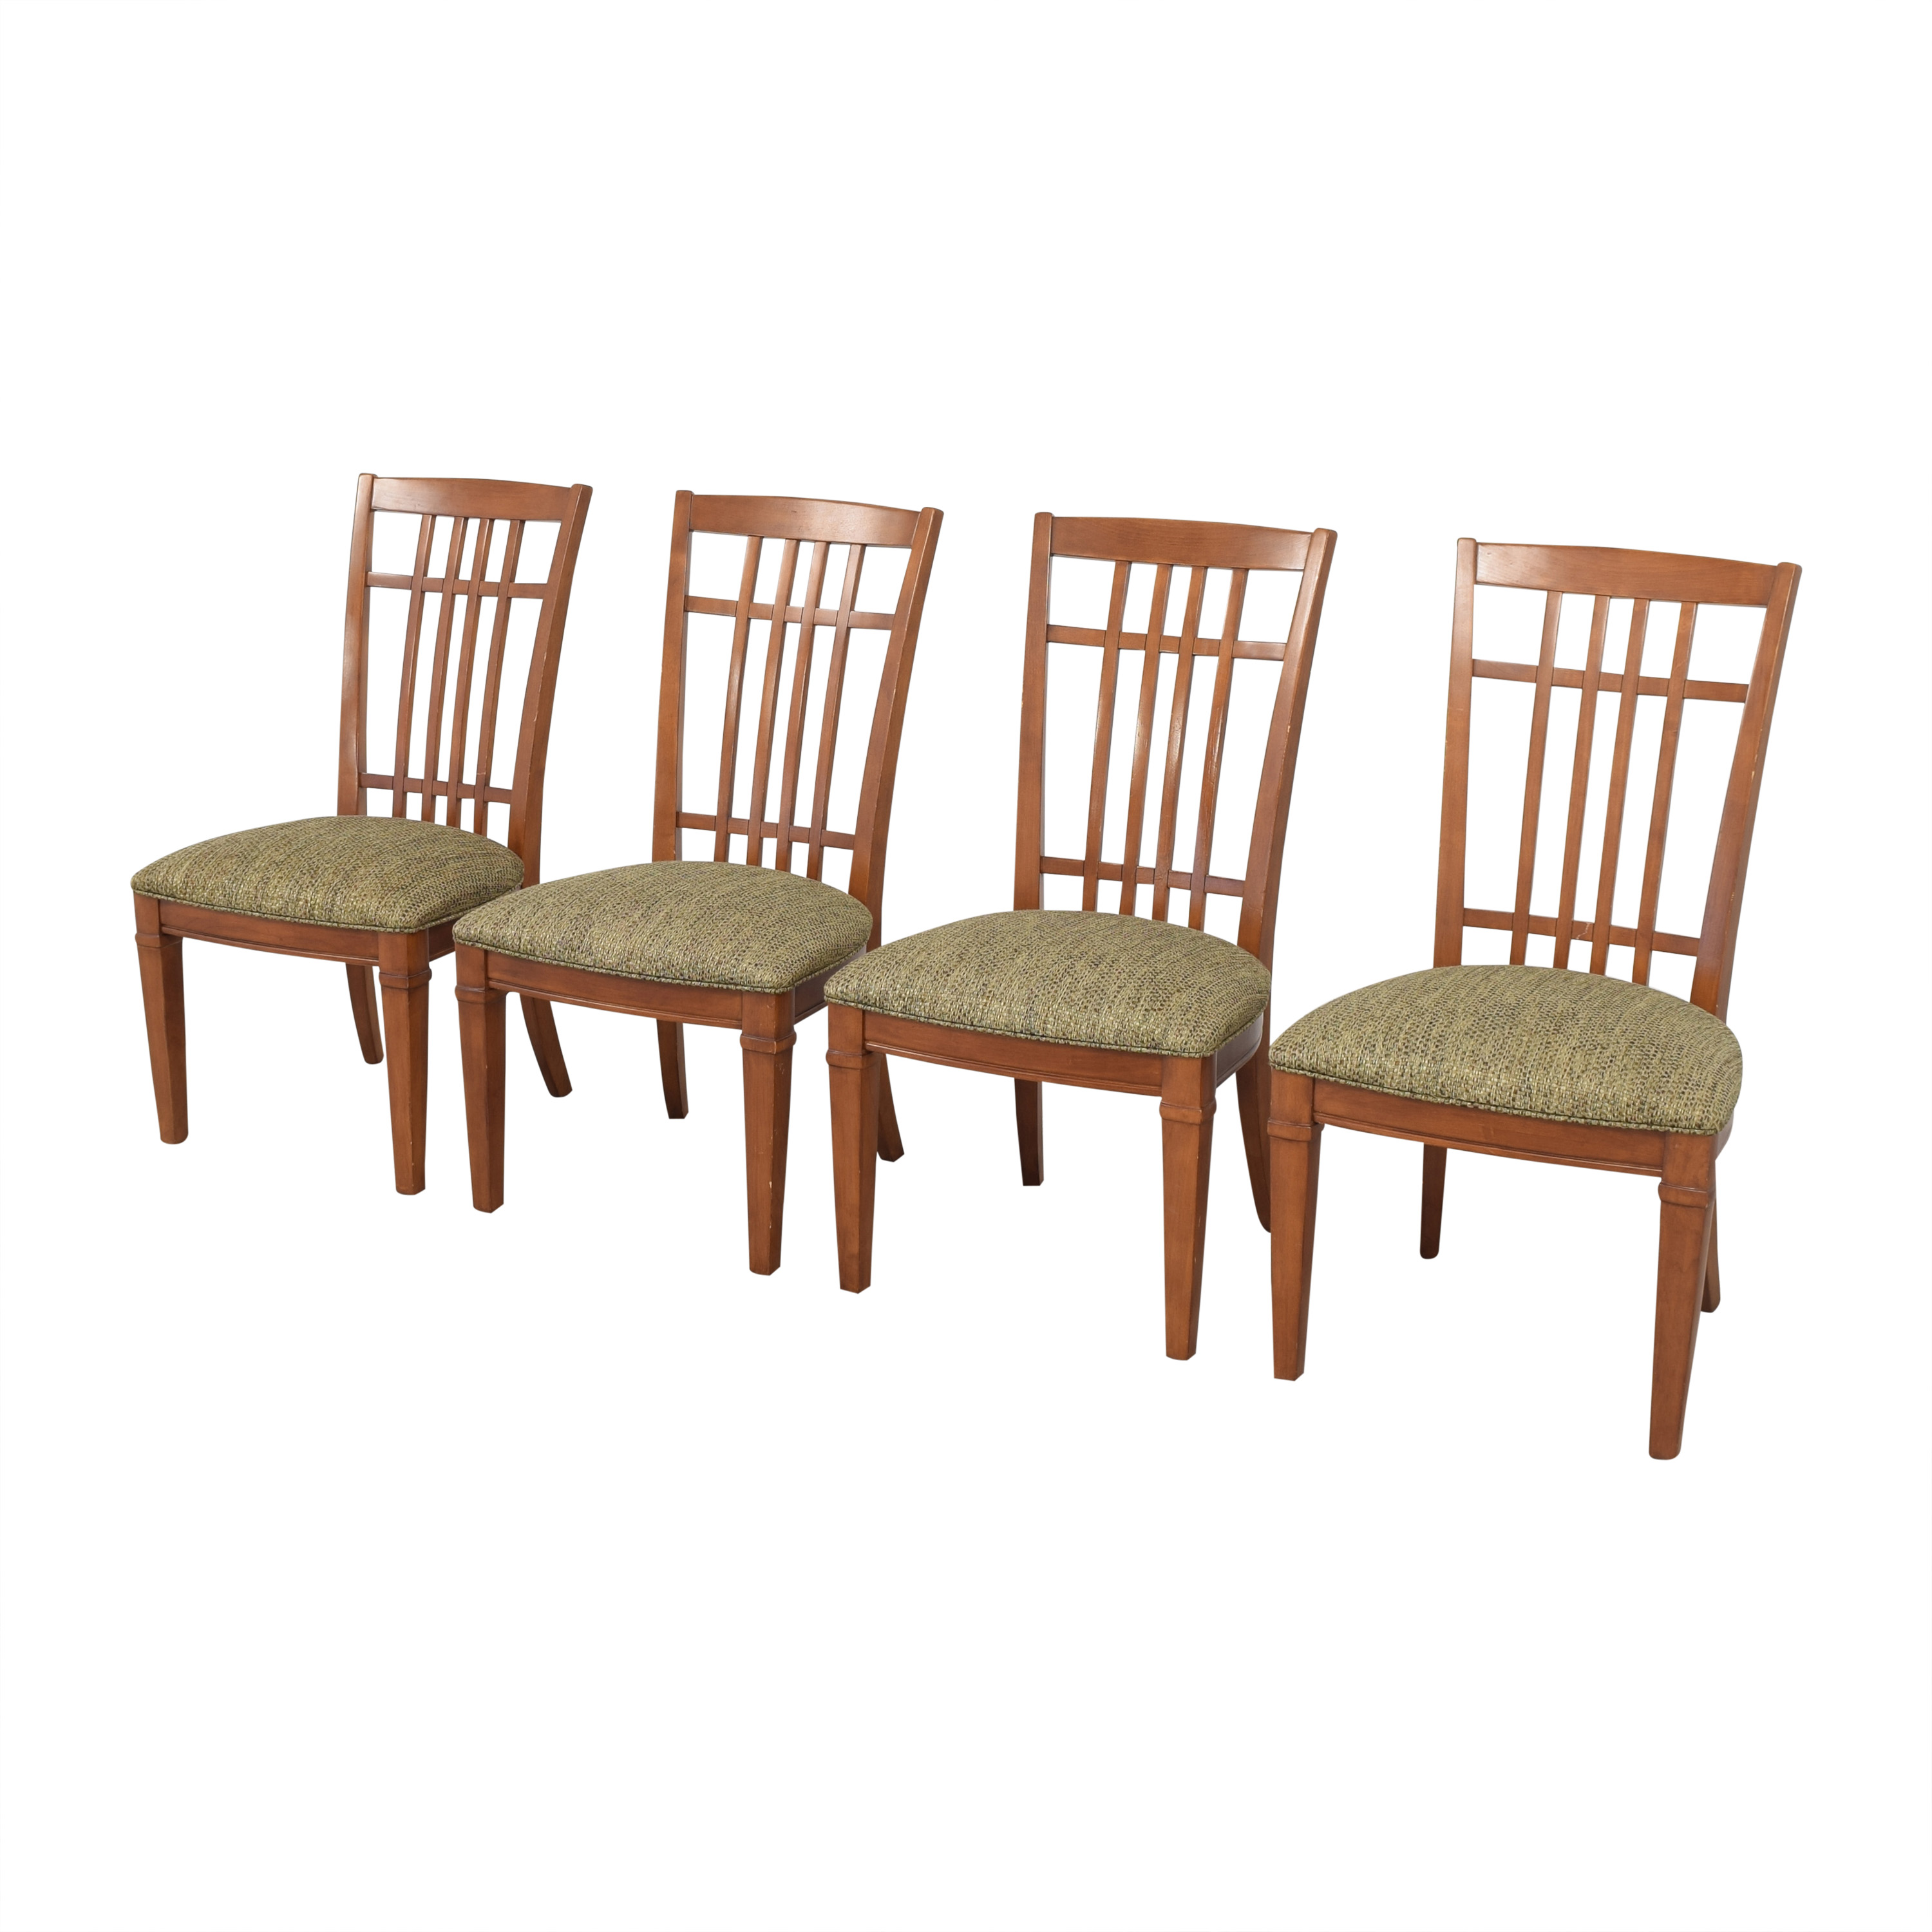 Thomasville Thomasville Bridges 2.0 Side Dining Chairs for sale